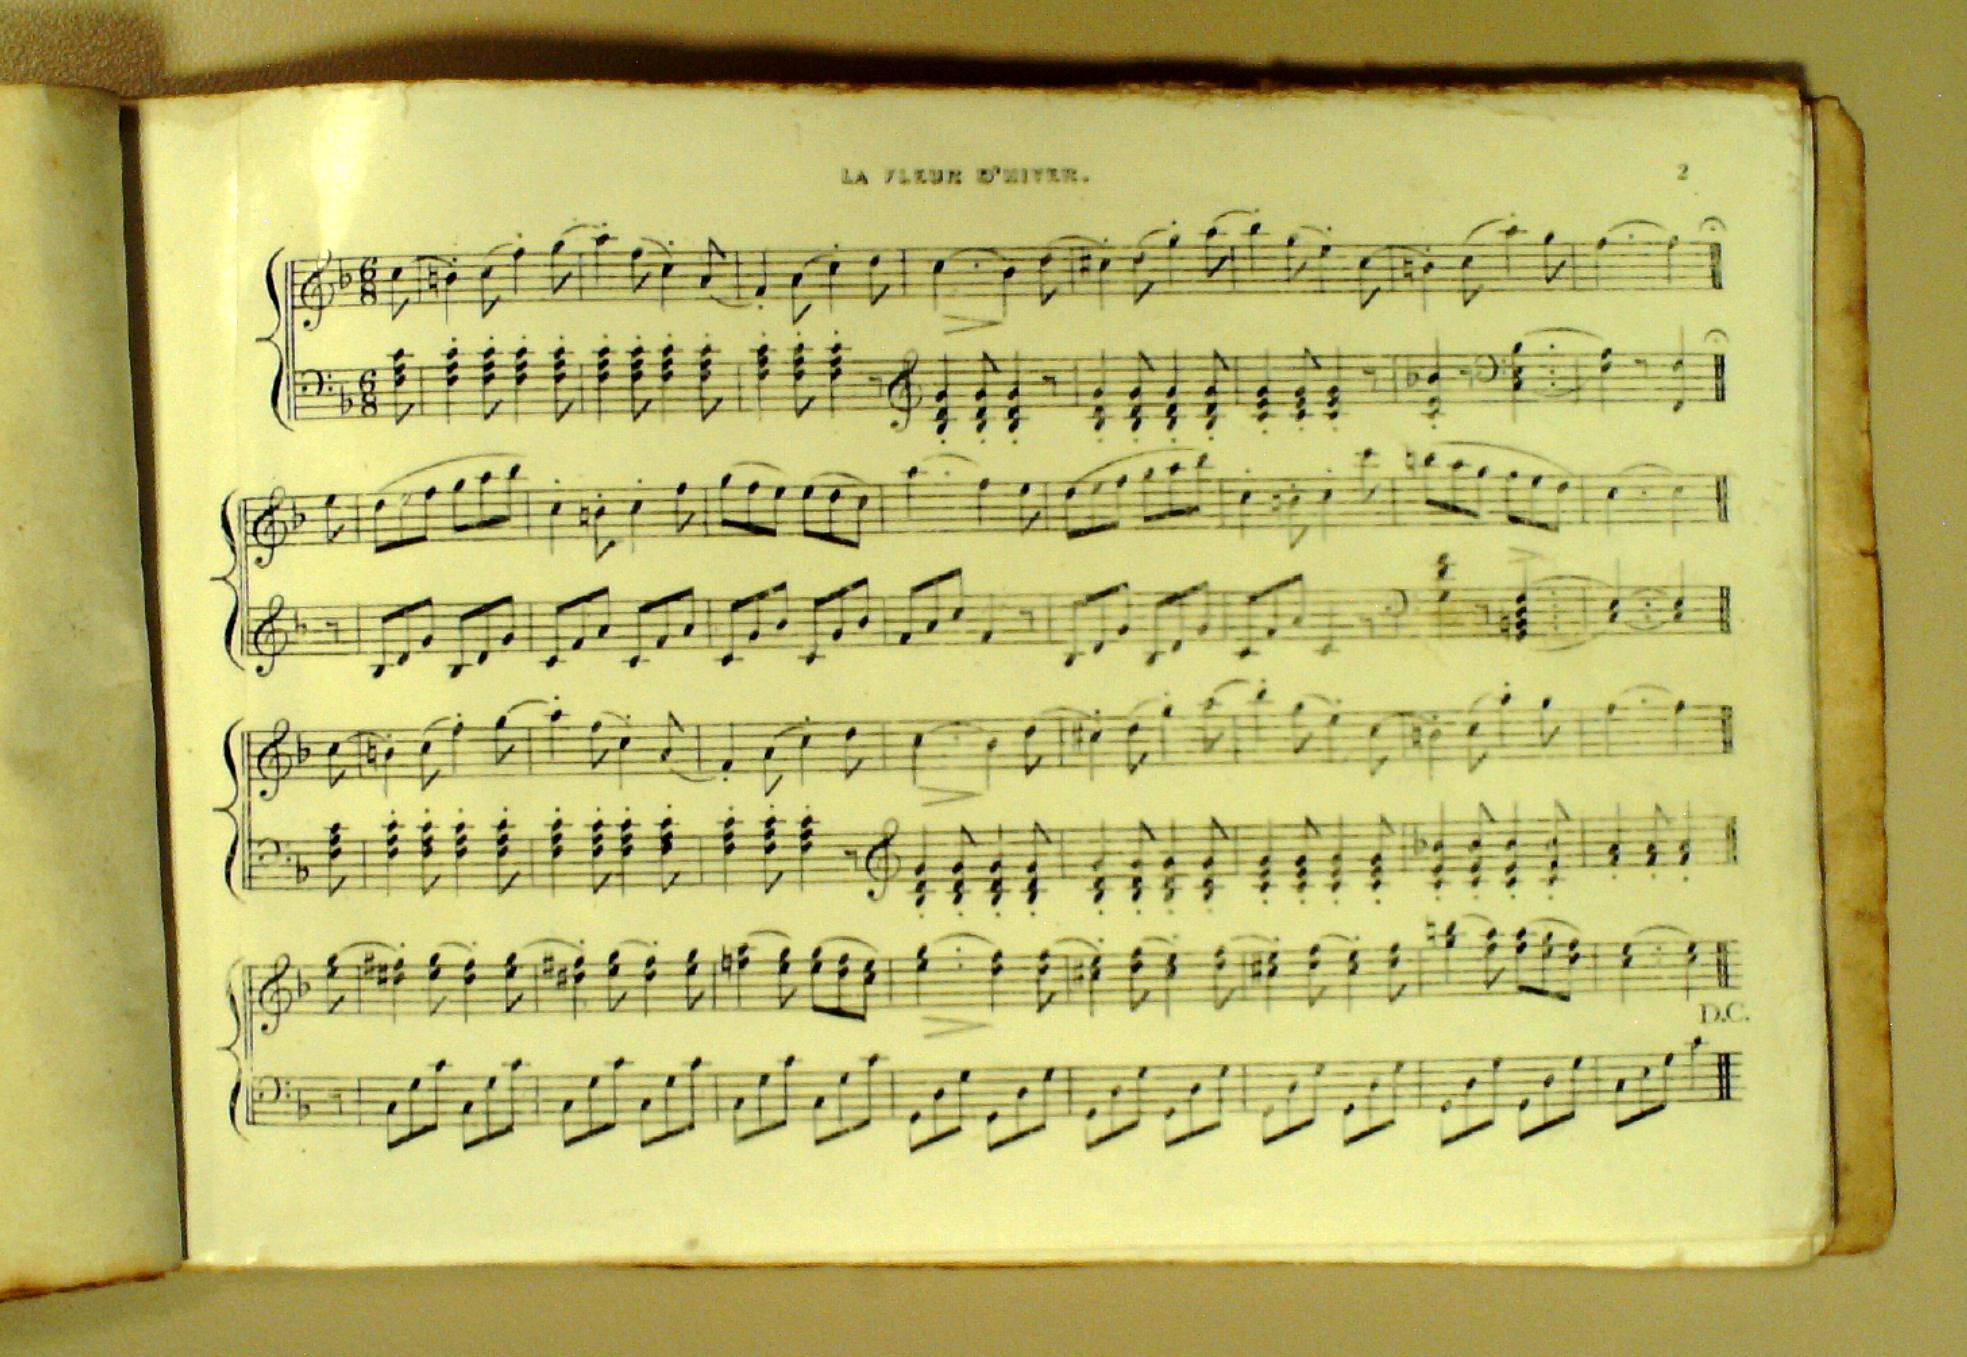 *2008TW-2095 (65 ) First Page Of Music